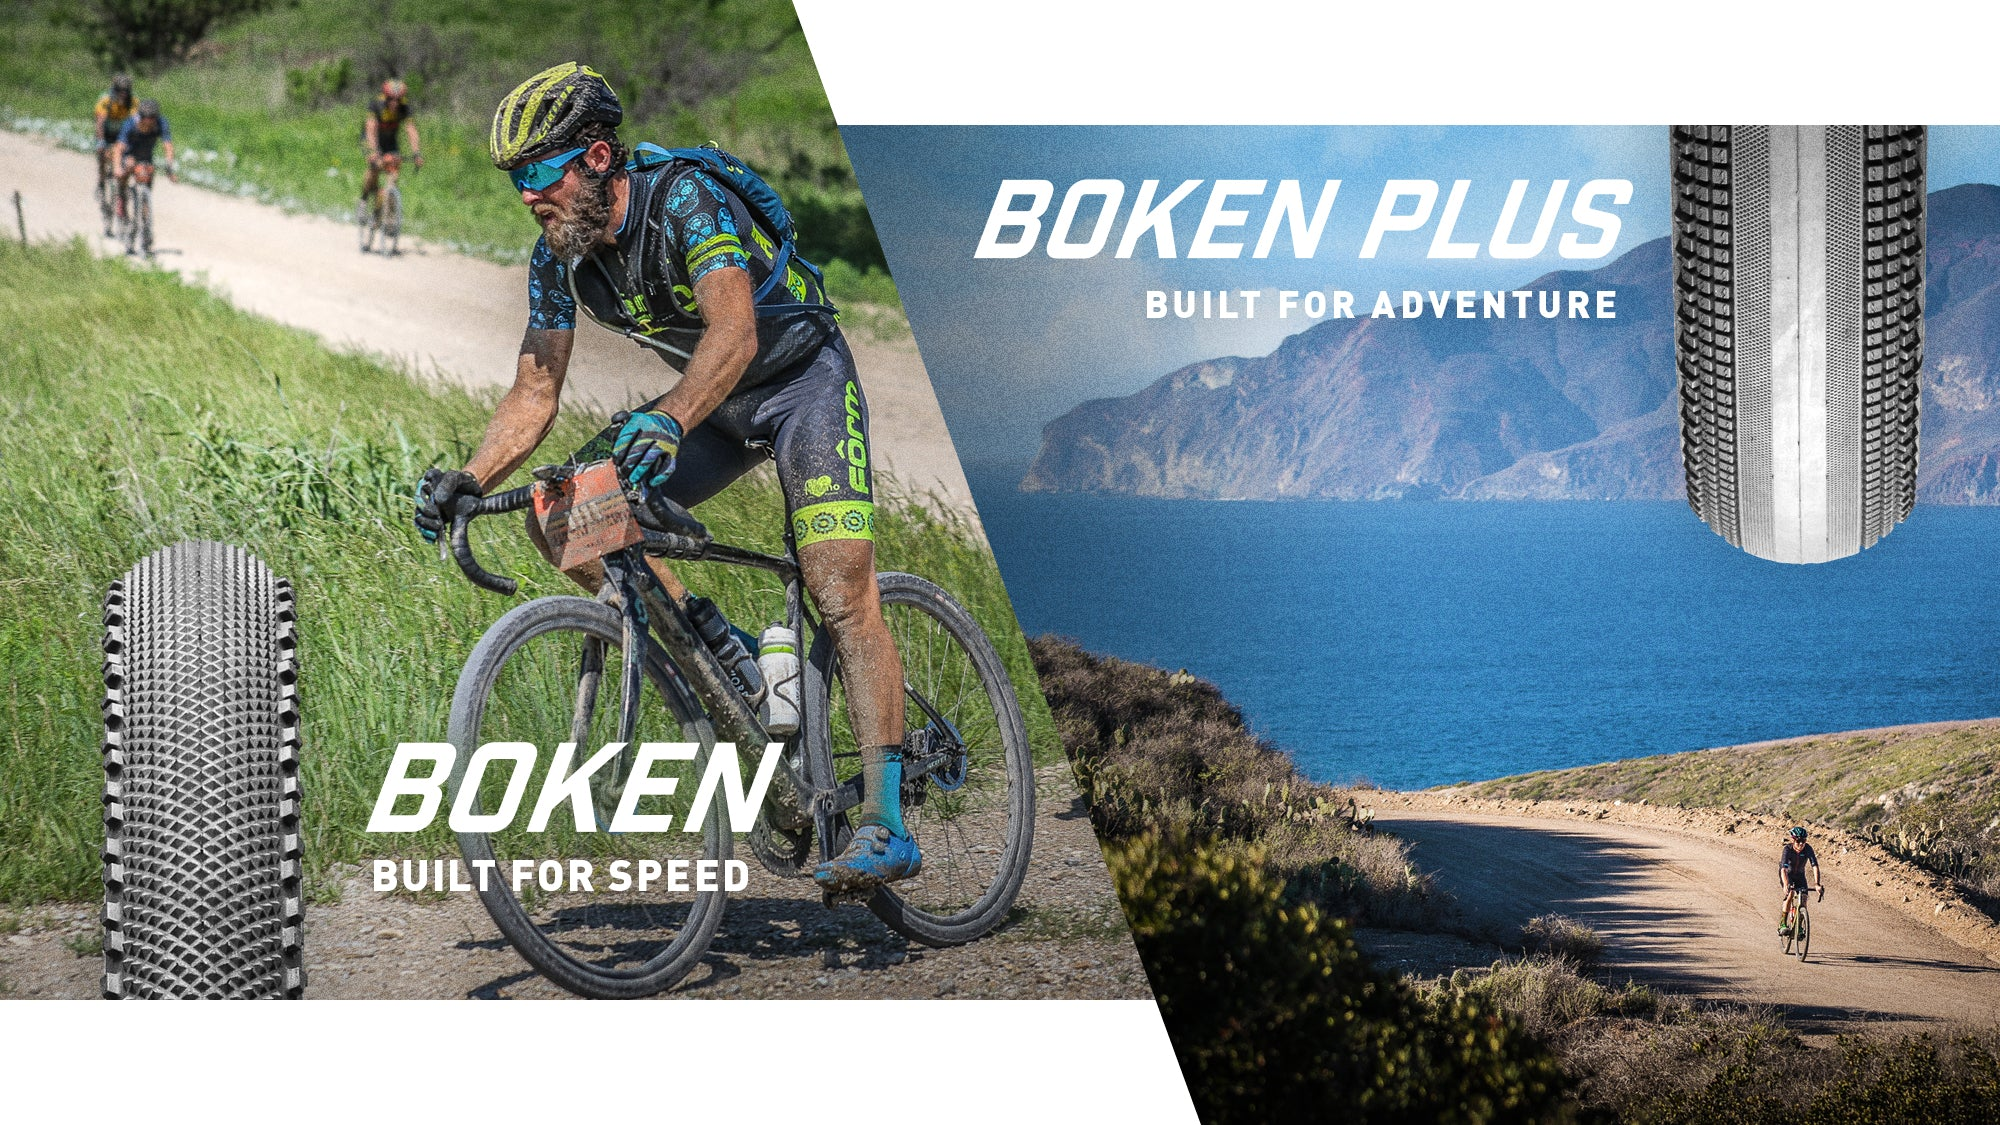 Boken: Built for Speed and Adventure